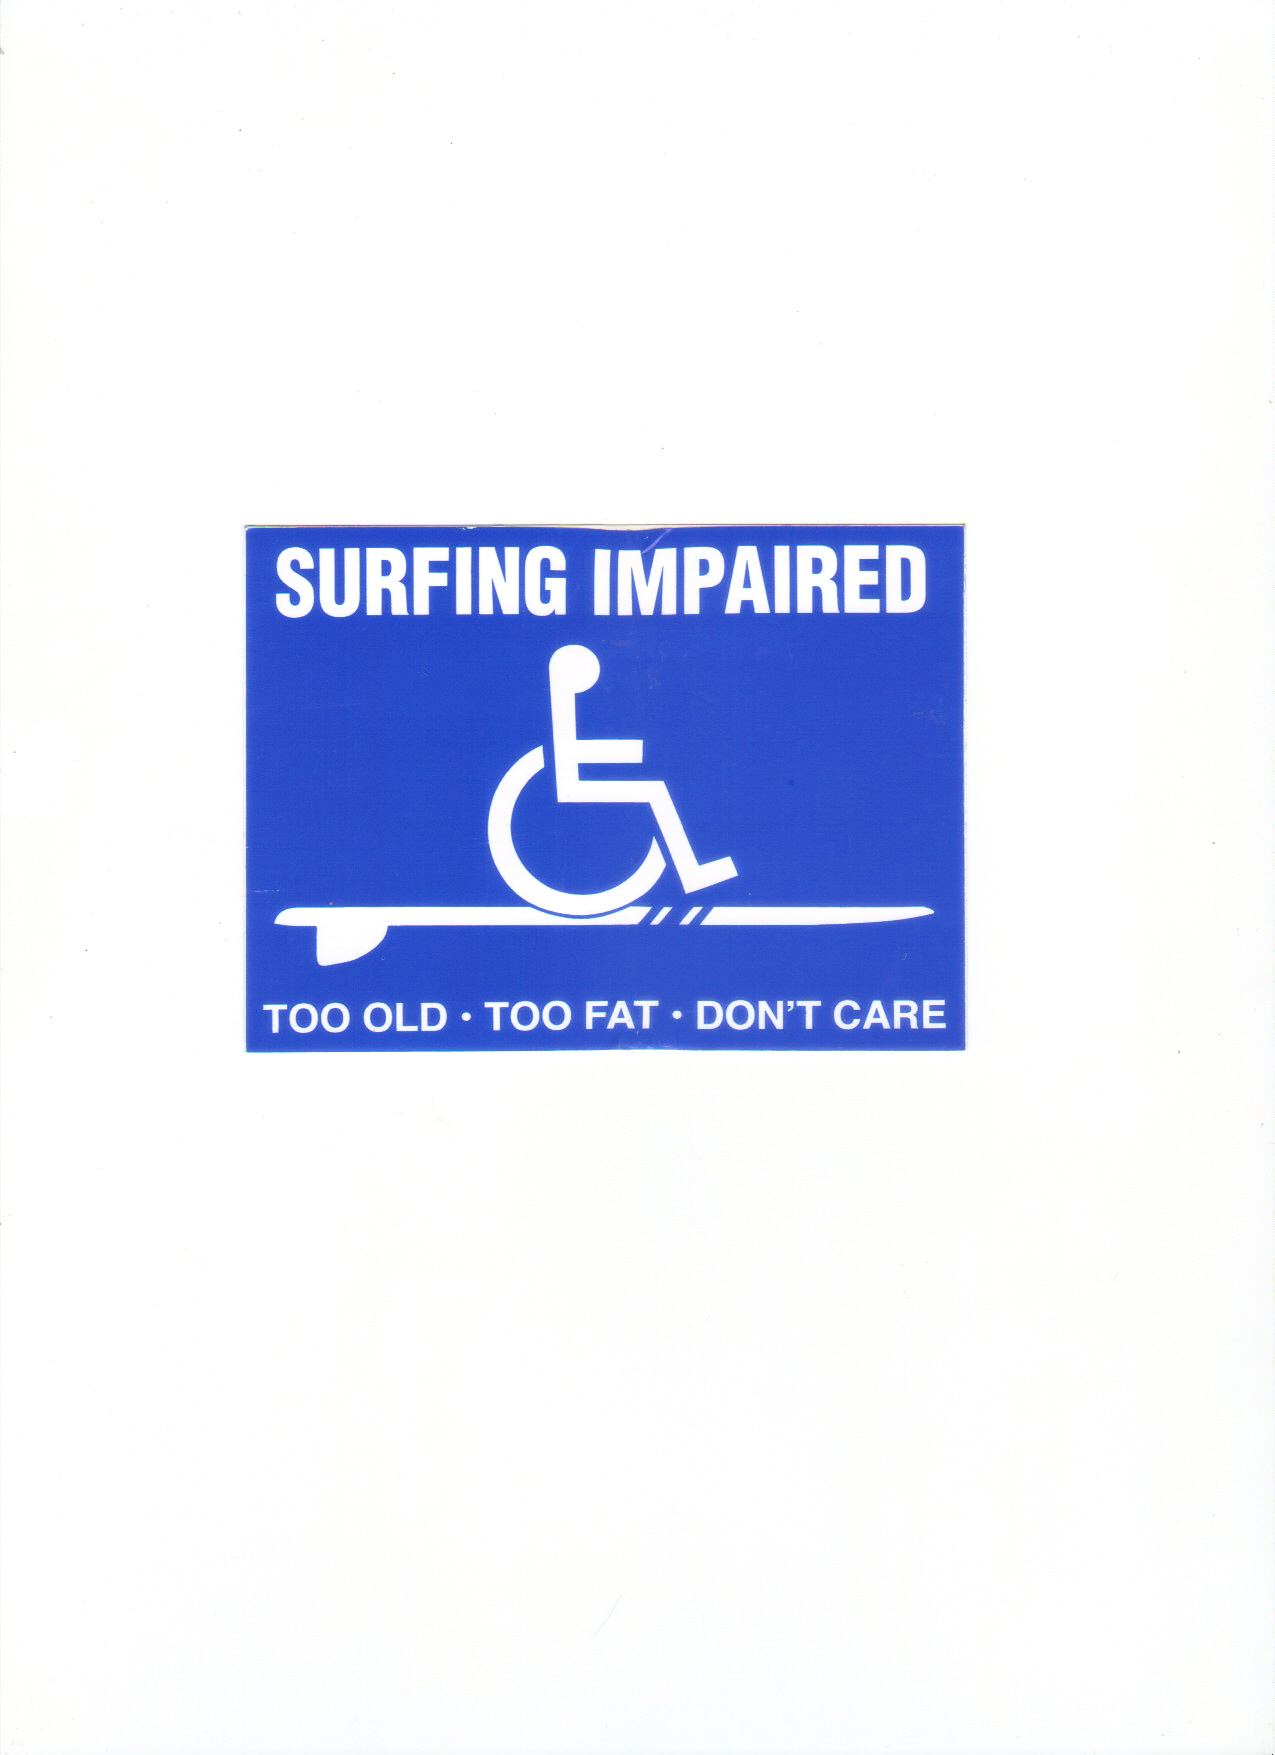 Surfing Impaired Sticker 1991Cool Surf Stickers